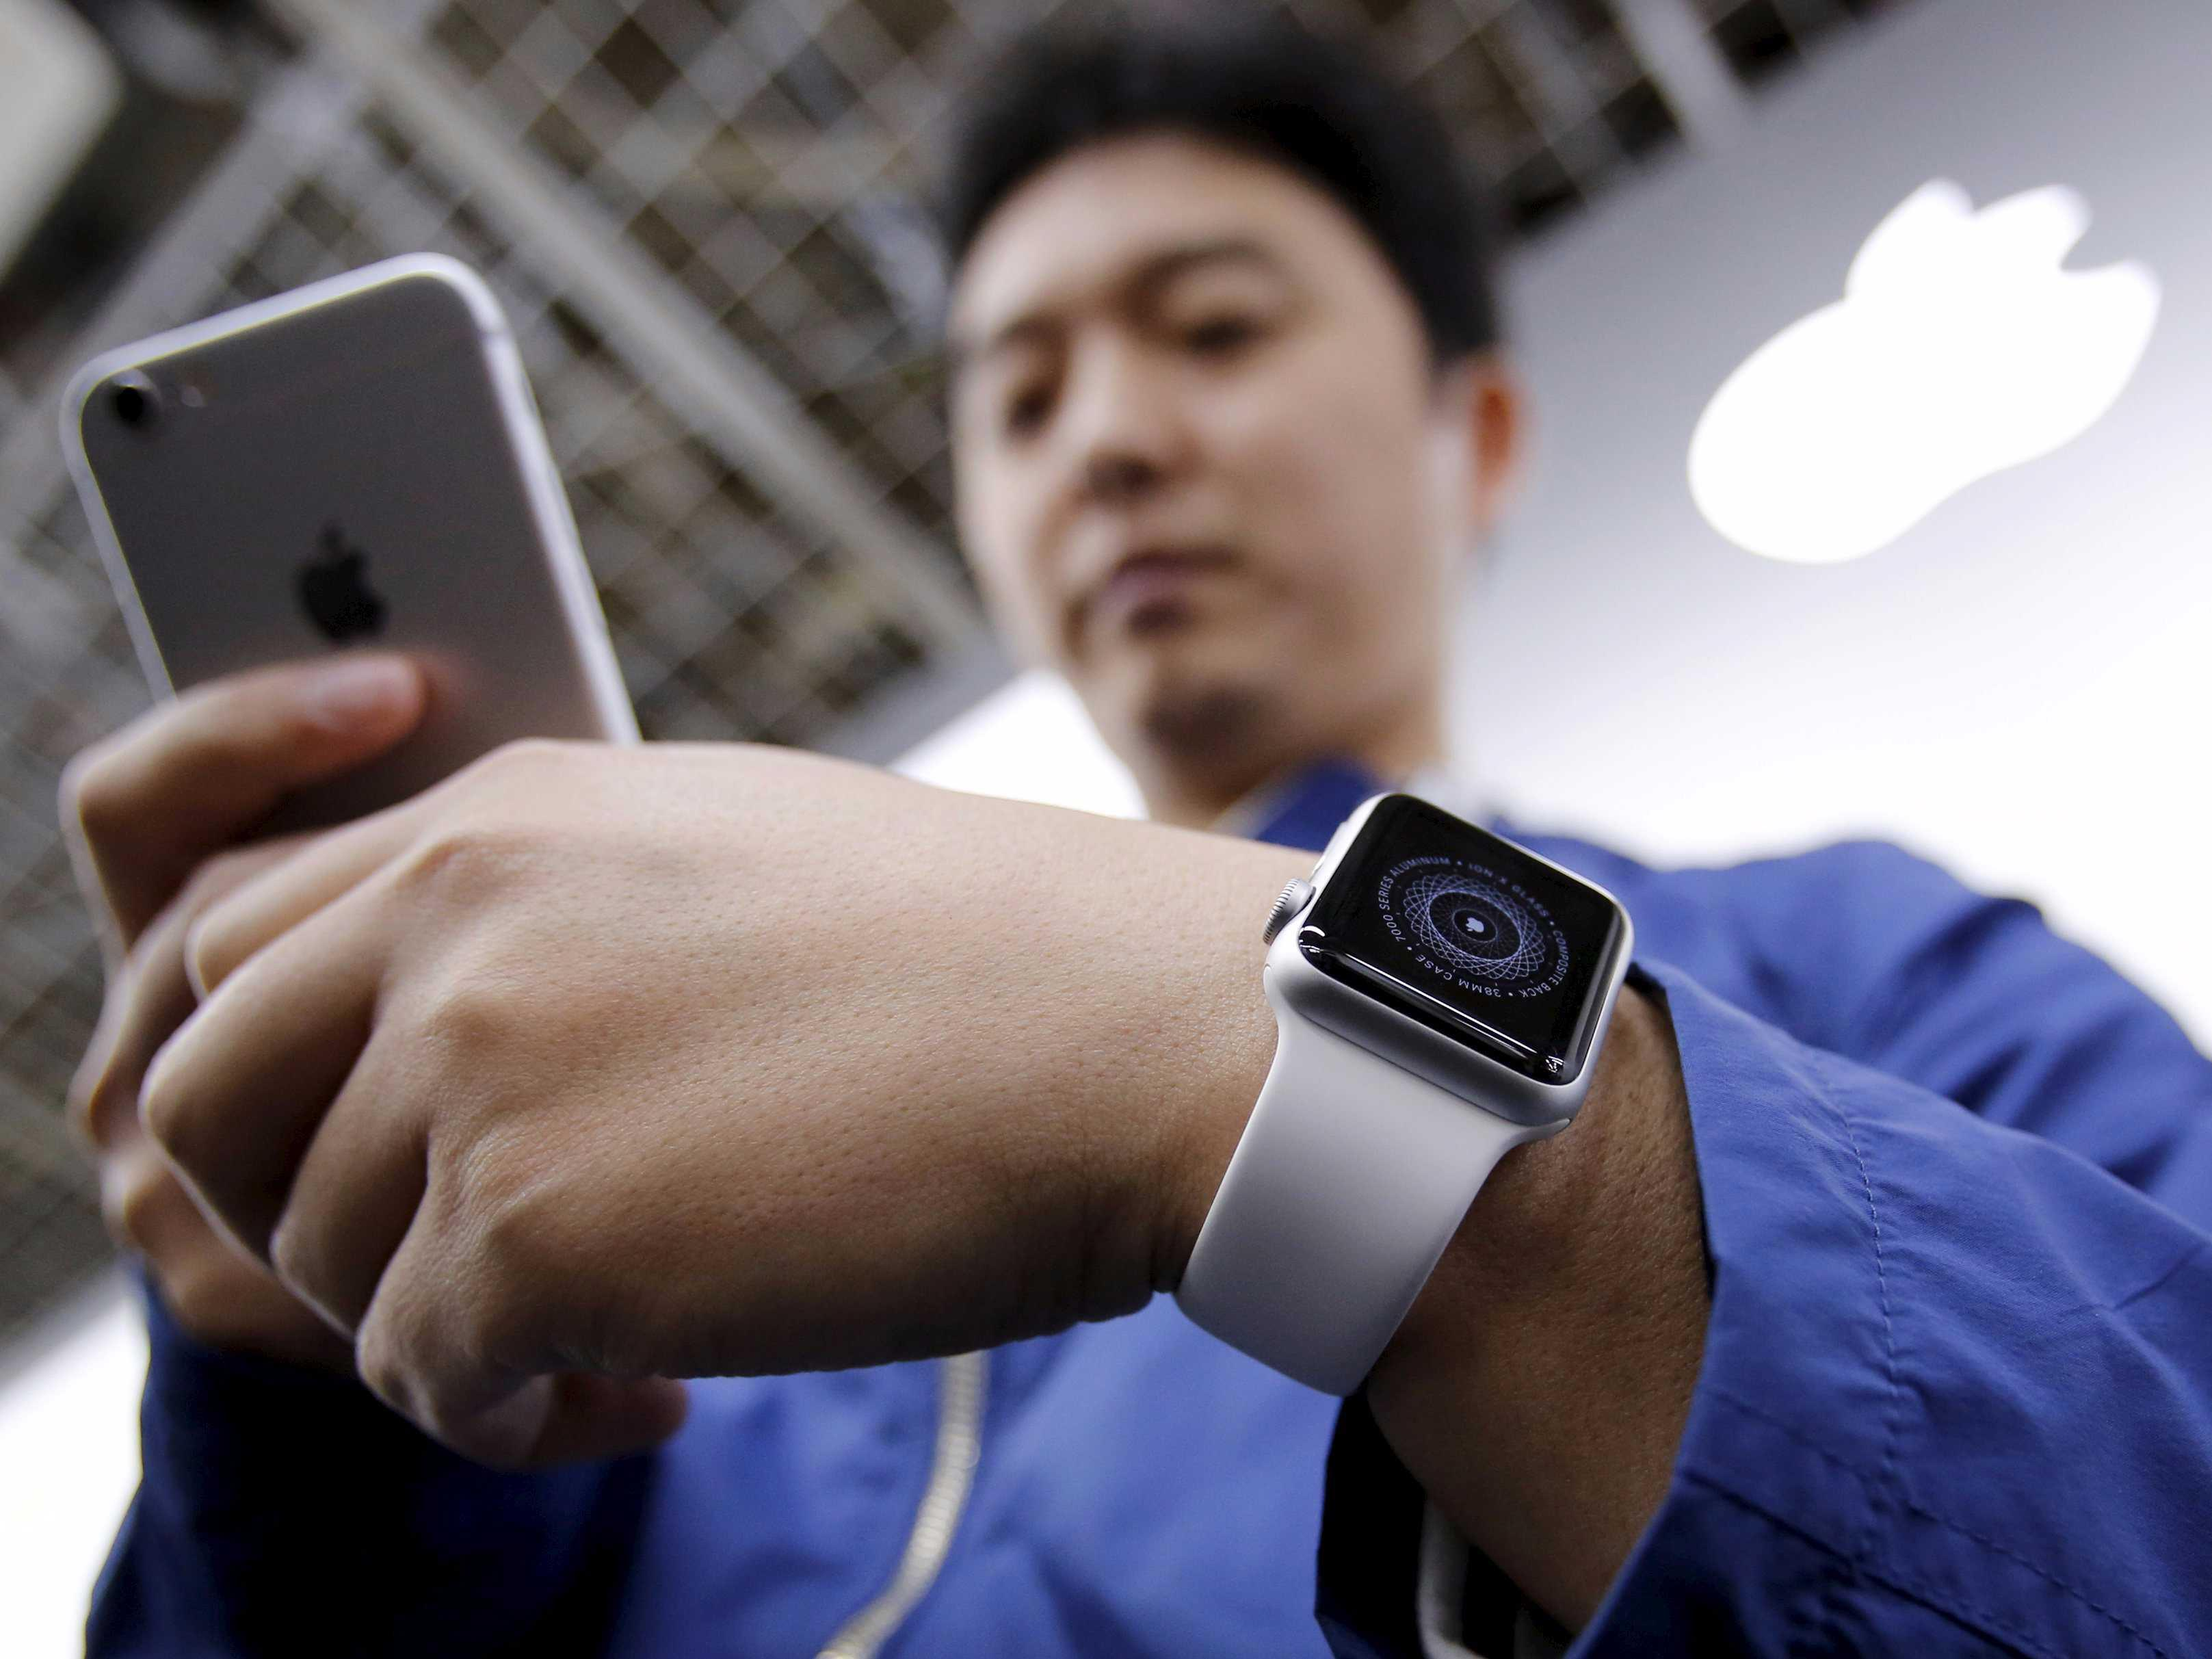 Apple didn't reveal how many Apple Watches it sold, but it's rushing to increase supply